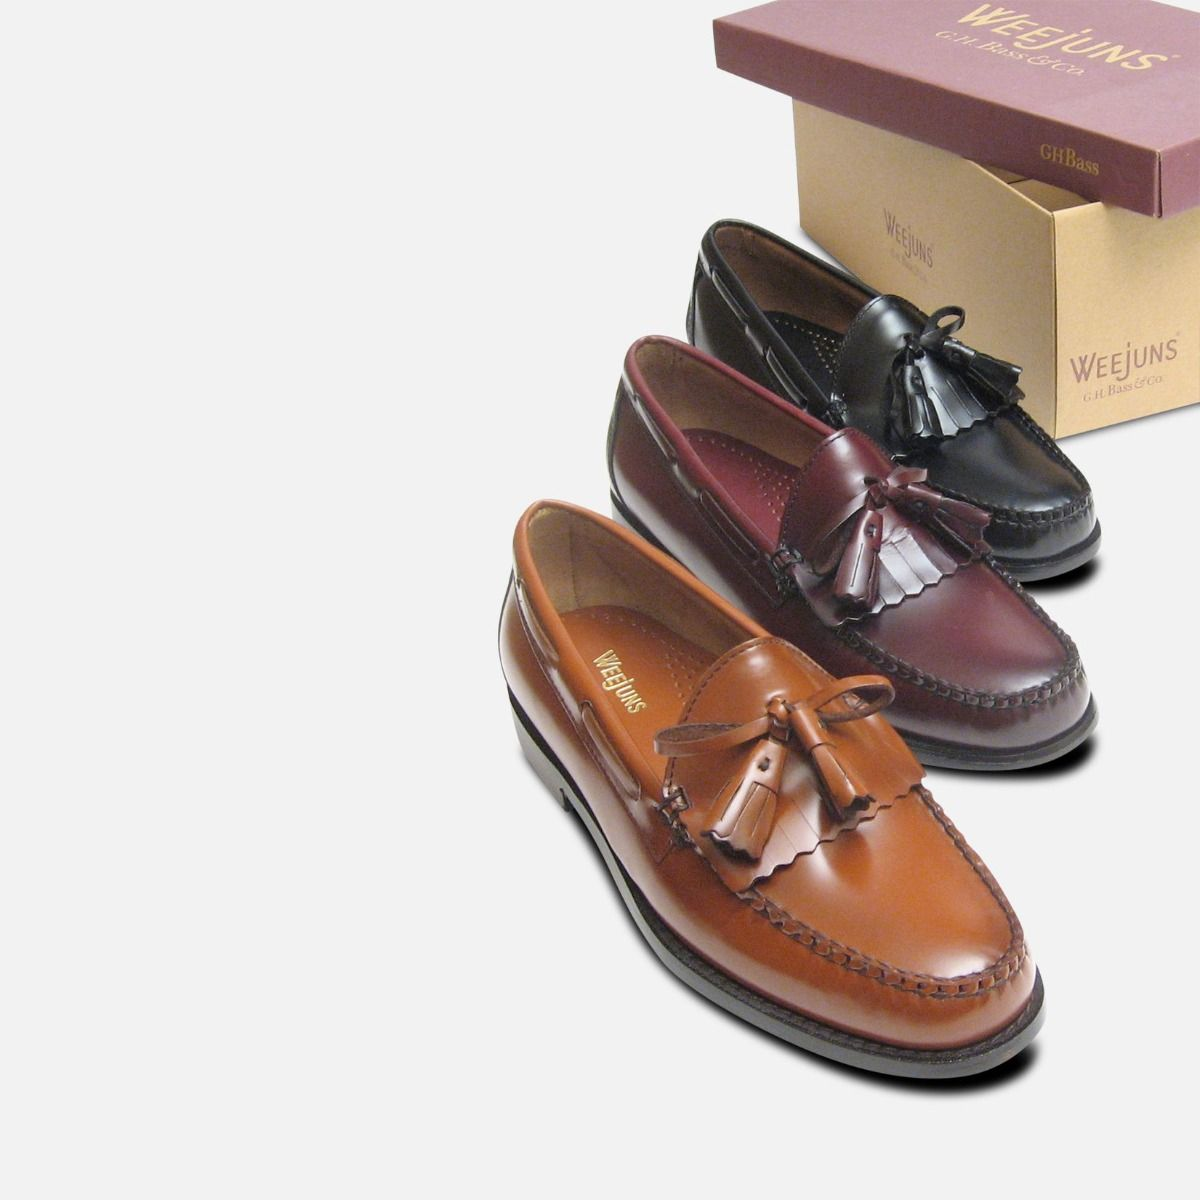 Burgundy Wine Polished Leather Formal Ivy League Tassel Loafers by Bass Weejuns